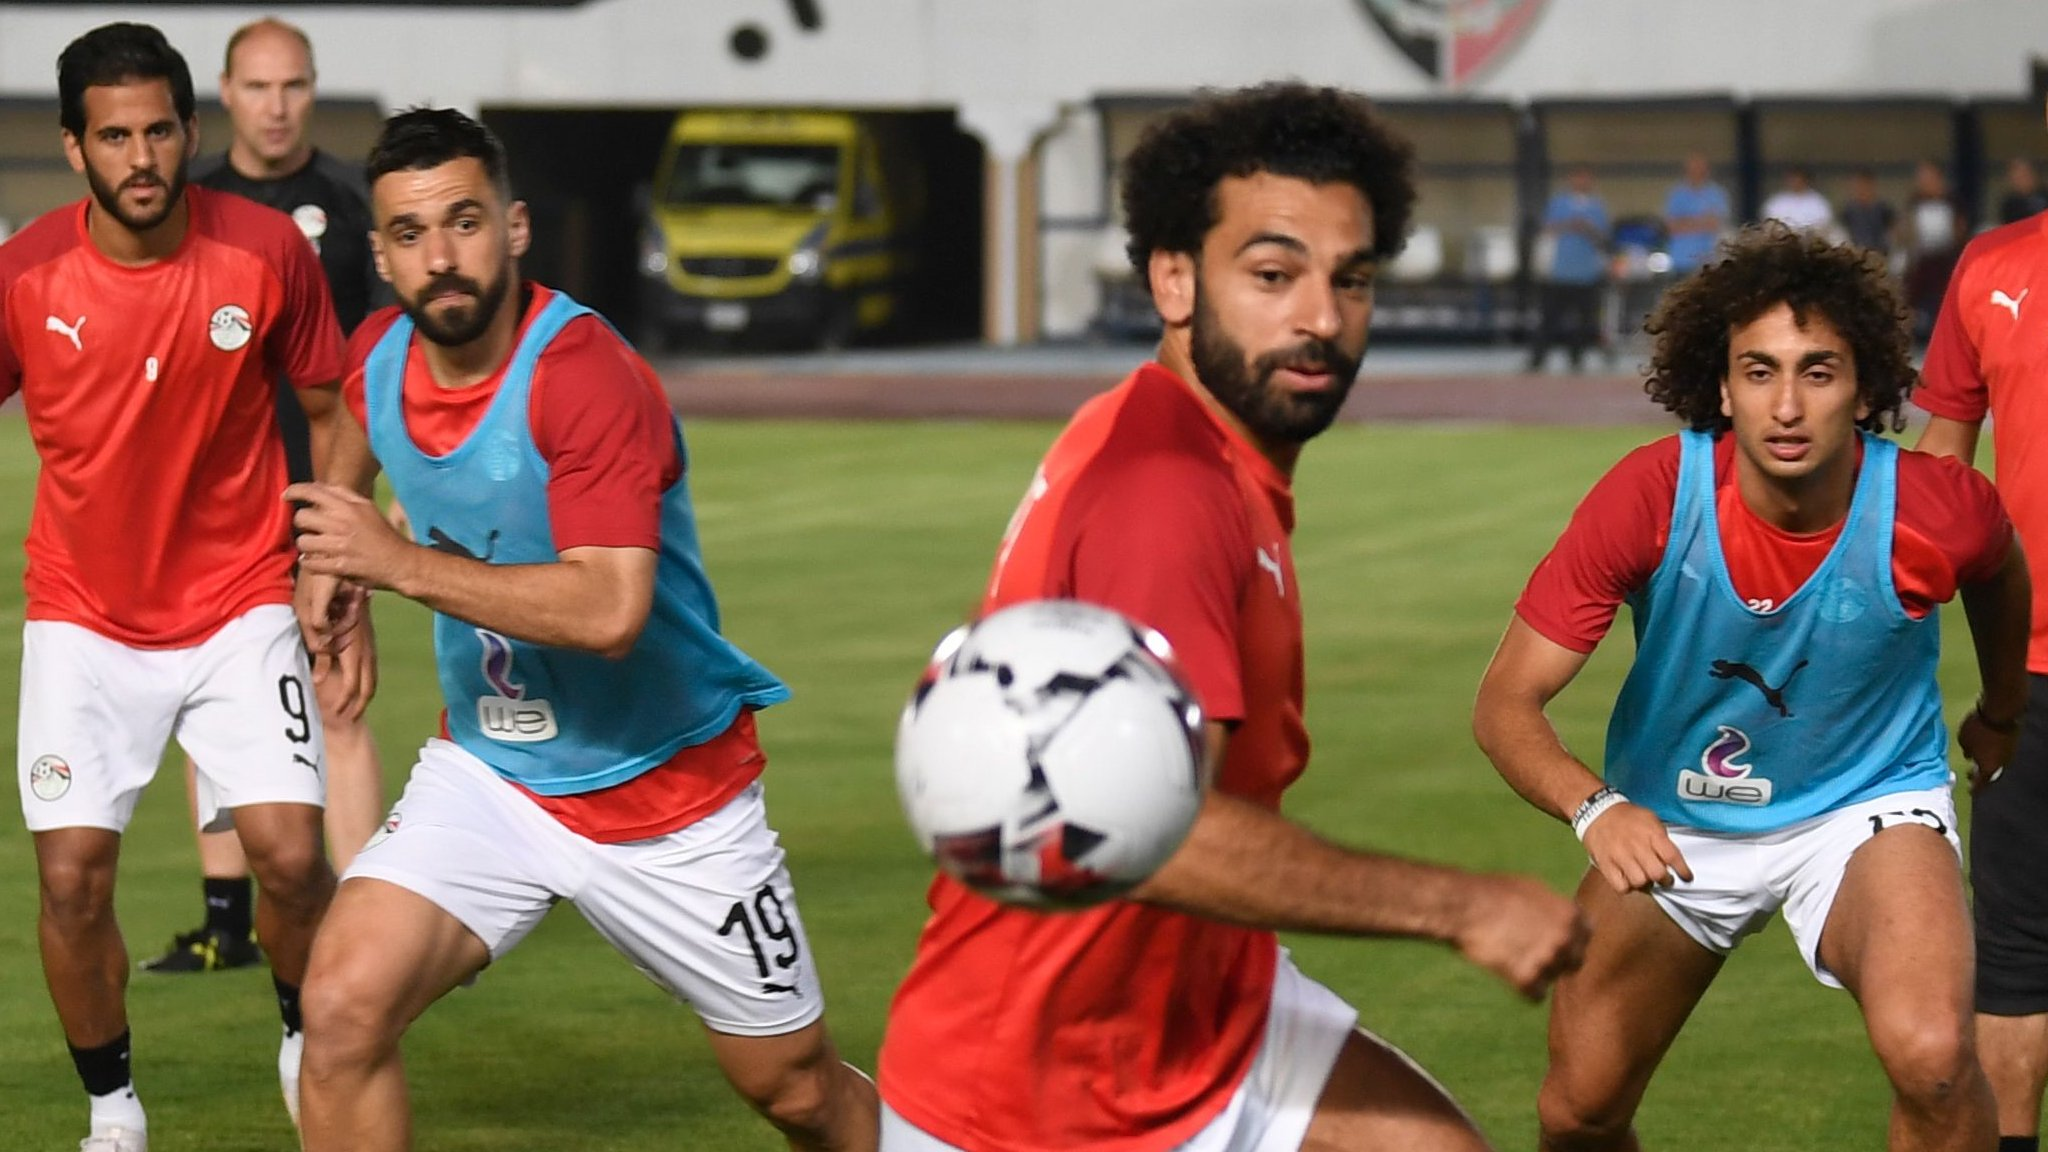 Africa Cup of Nations: Egypt play Zimbabwe in first game of tournament